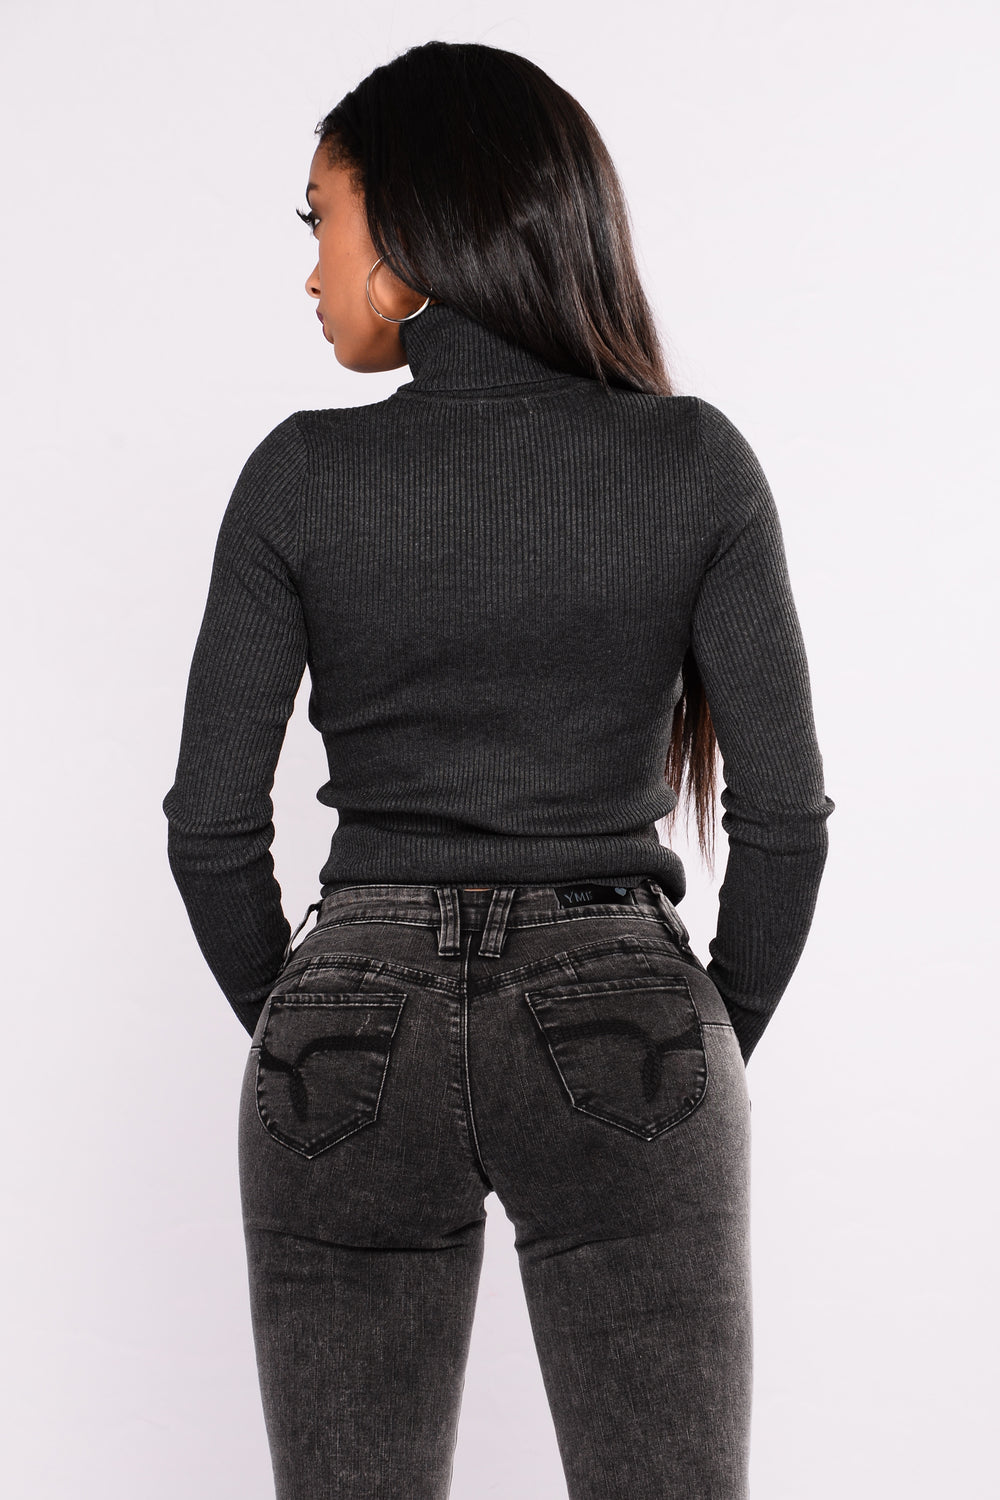 Tara Turtle Neck Sweater - Charcoal